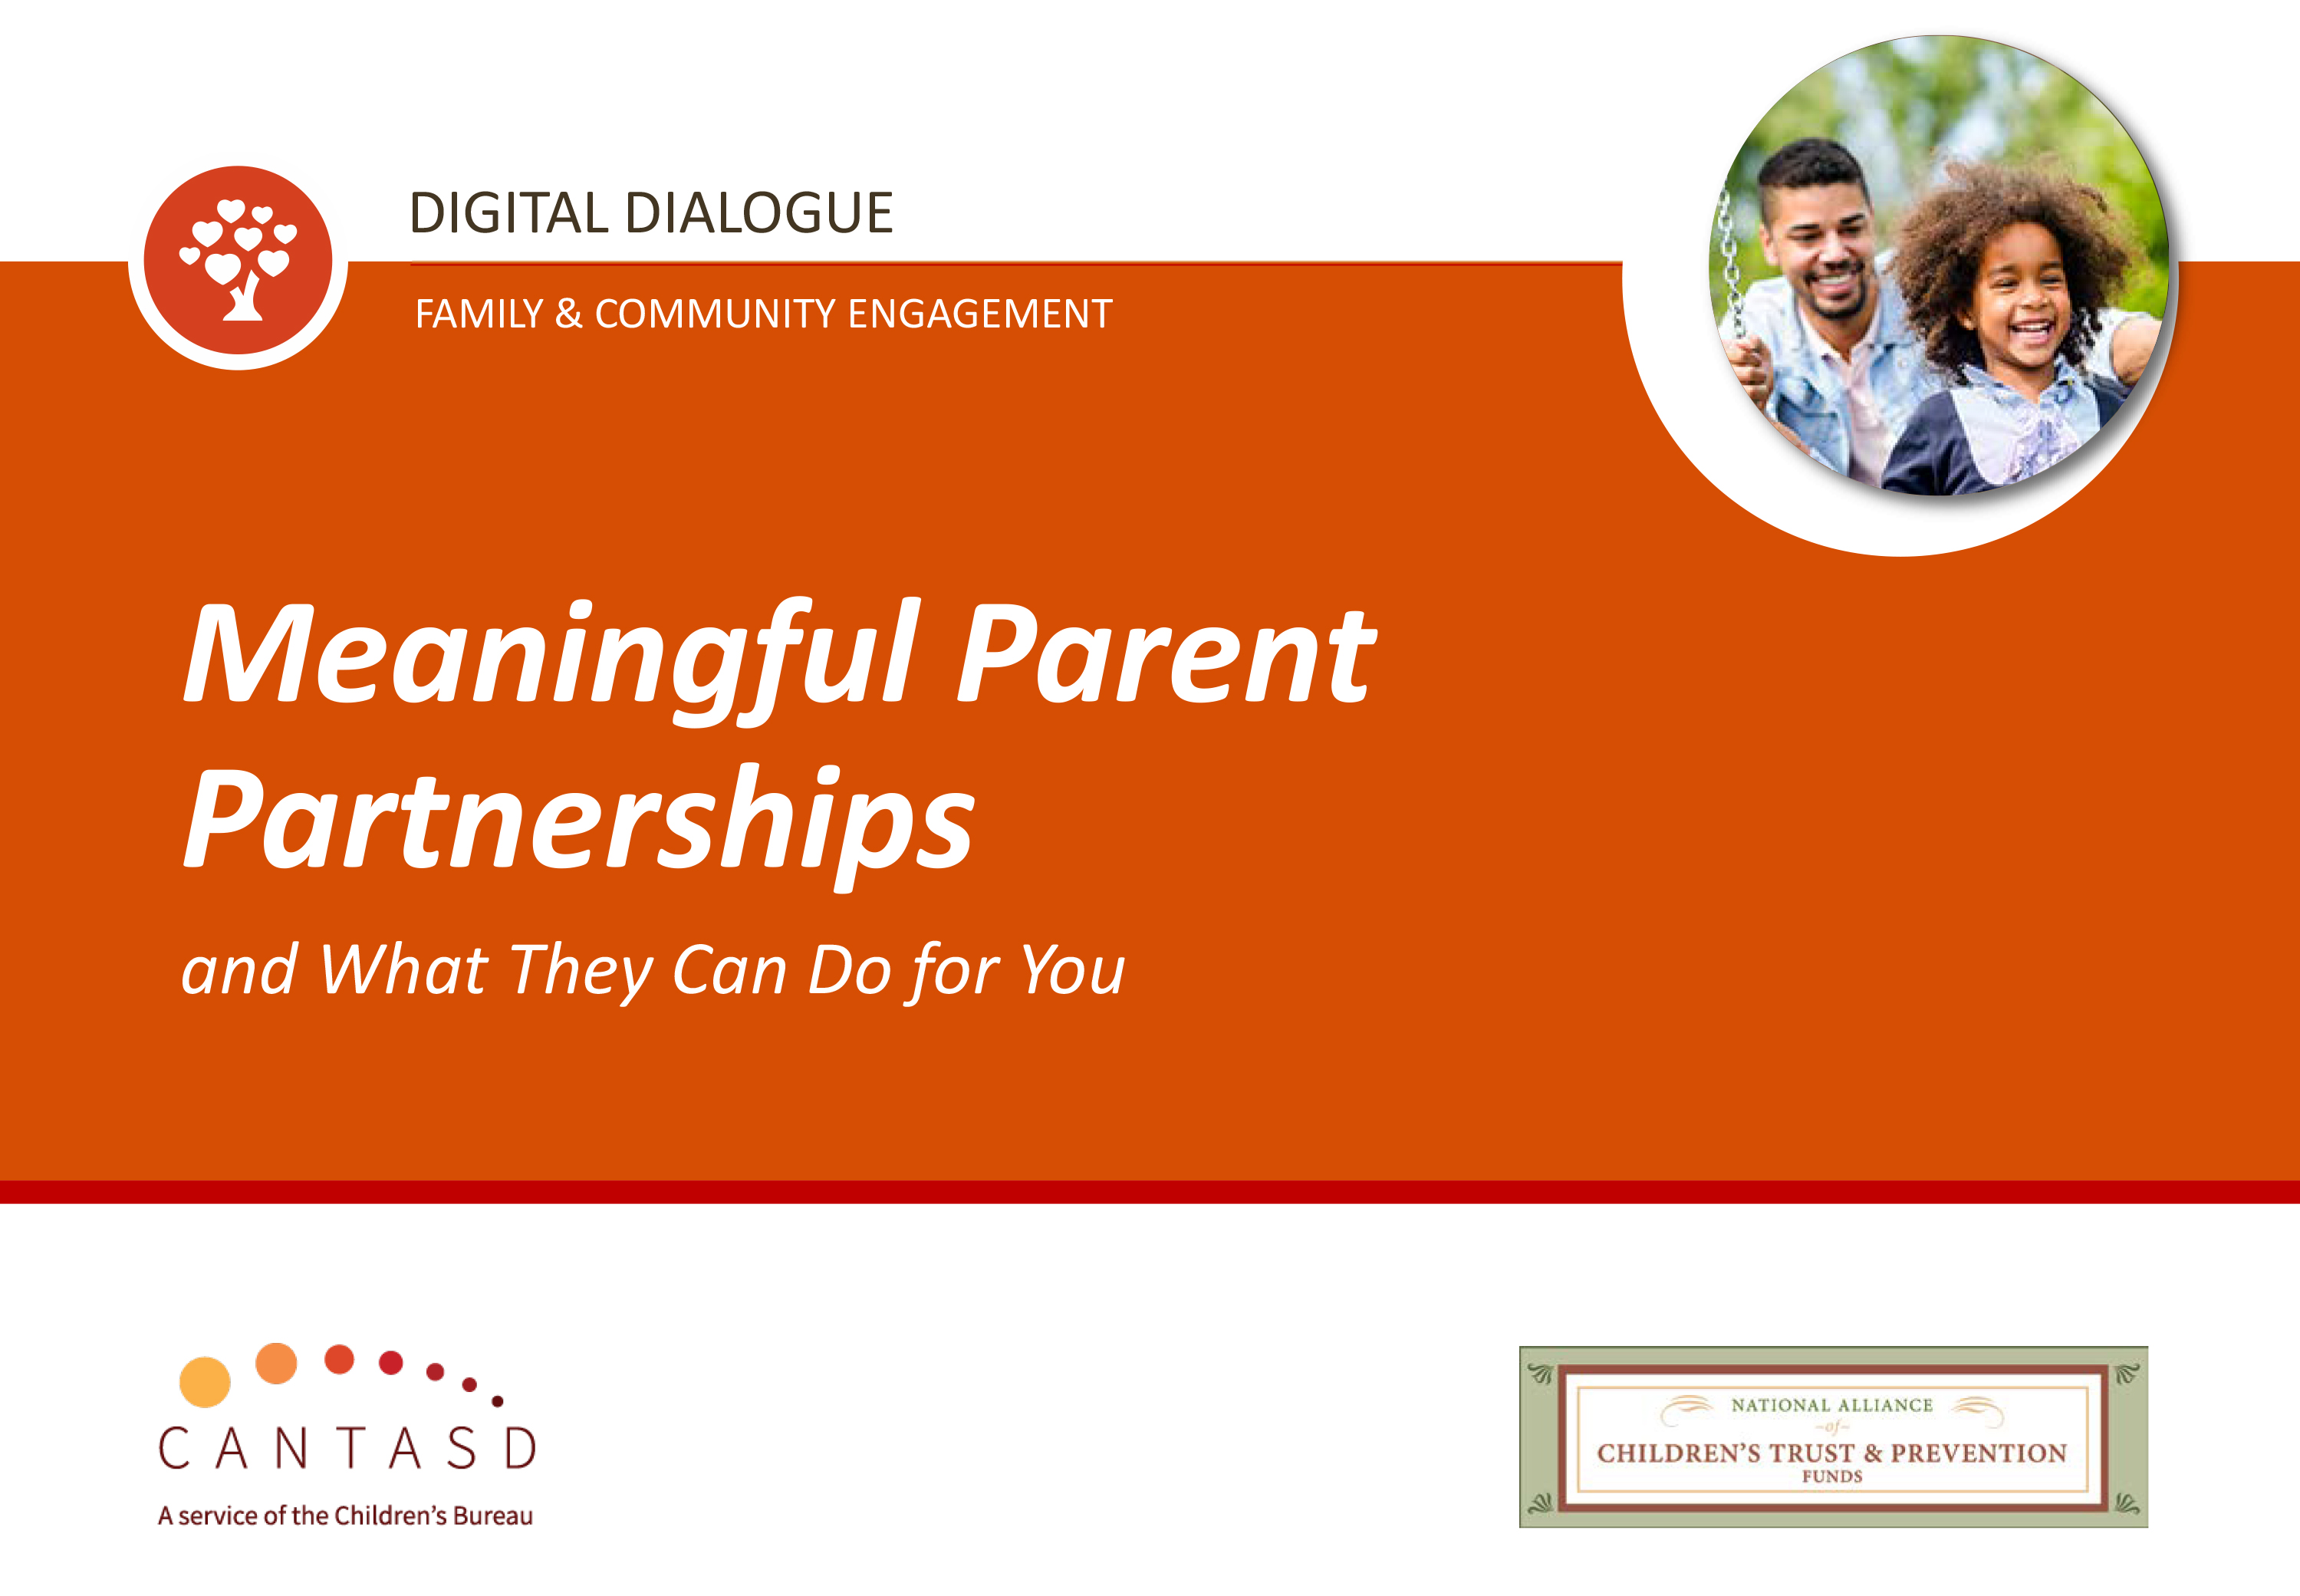 Meaningful Parent Partnerships and What They Can Do for You - This link opens in a new window.